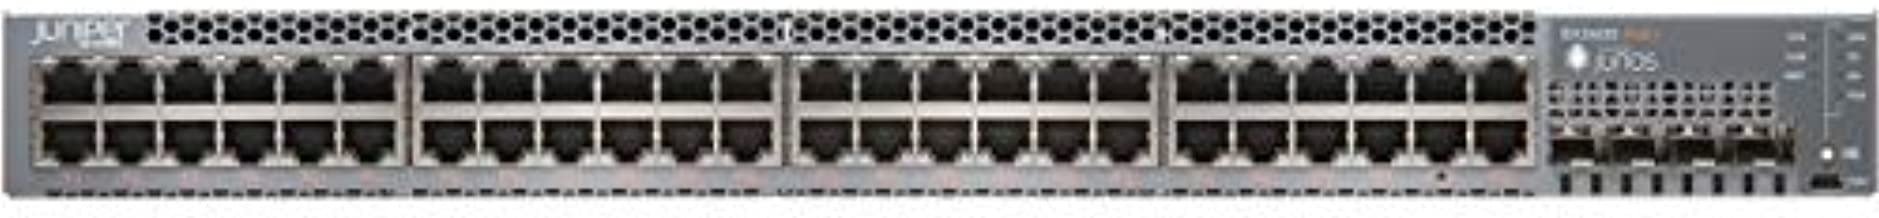 Juniper EX Series EX3400-48T 48 Port Switch